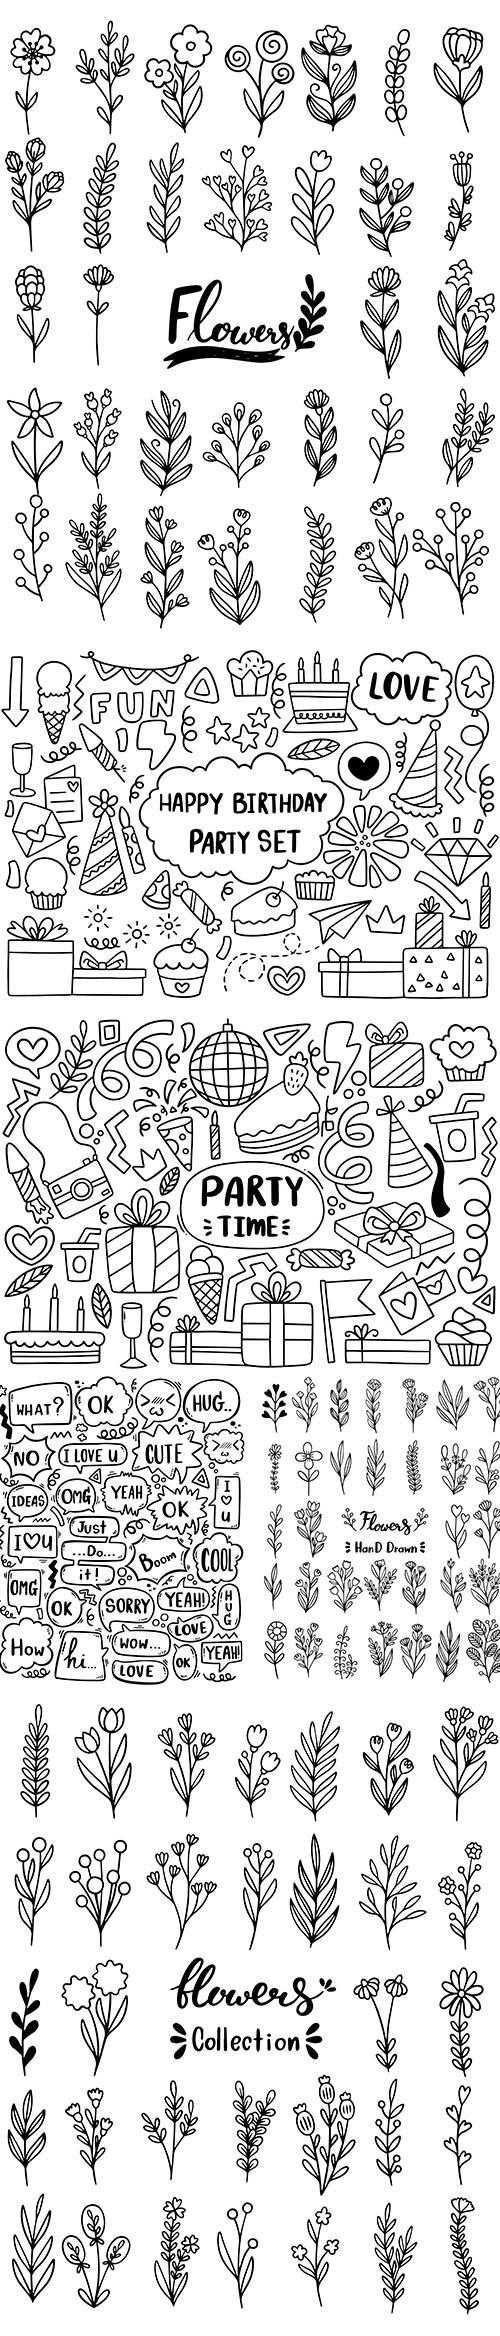 Hand drawn party doodle cute speech bubble eith text and flowers